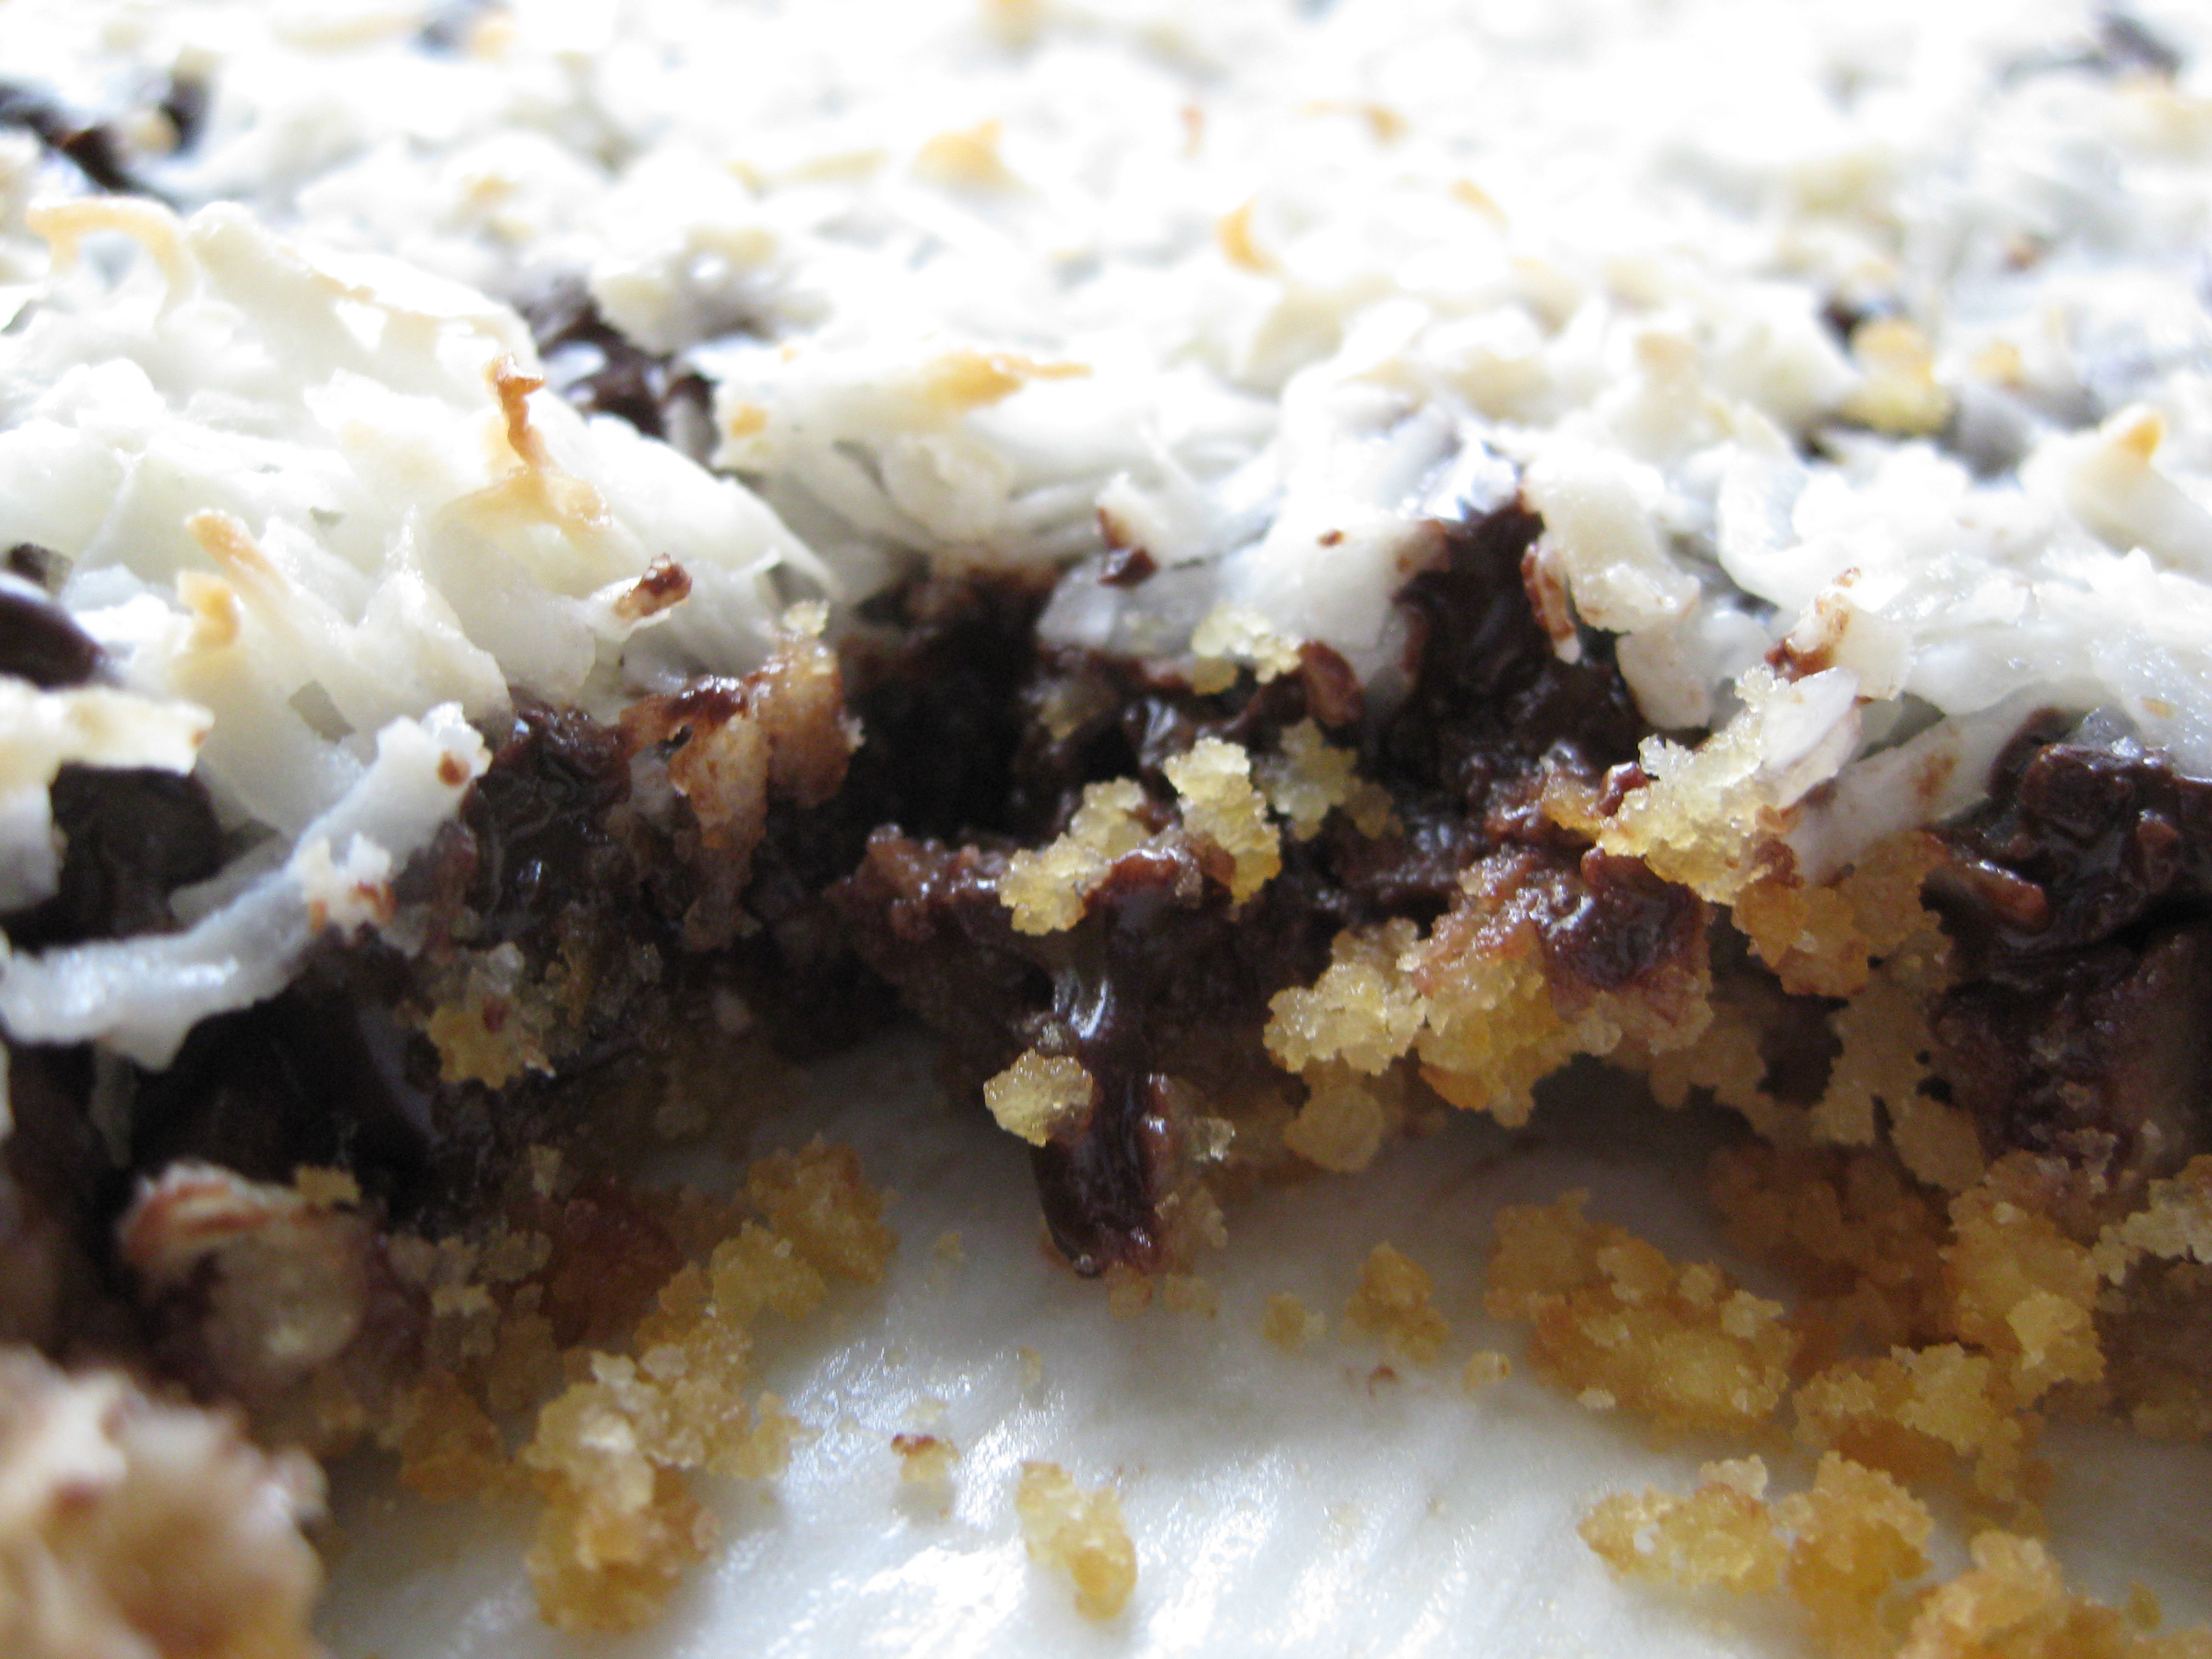 7 Layer Bars Eagle Brand http://pragmaticattic.wordpress.com/2010/04/22/dairy-free-vegan-7-layer-bars/